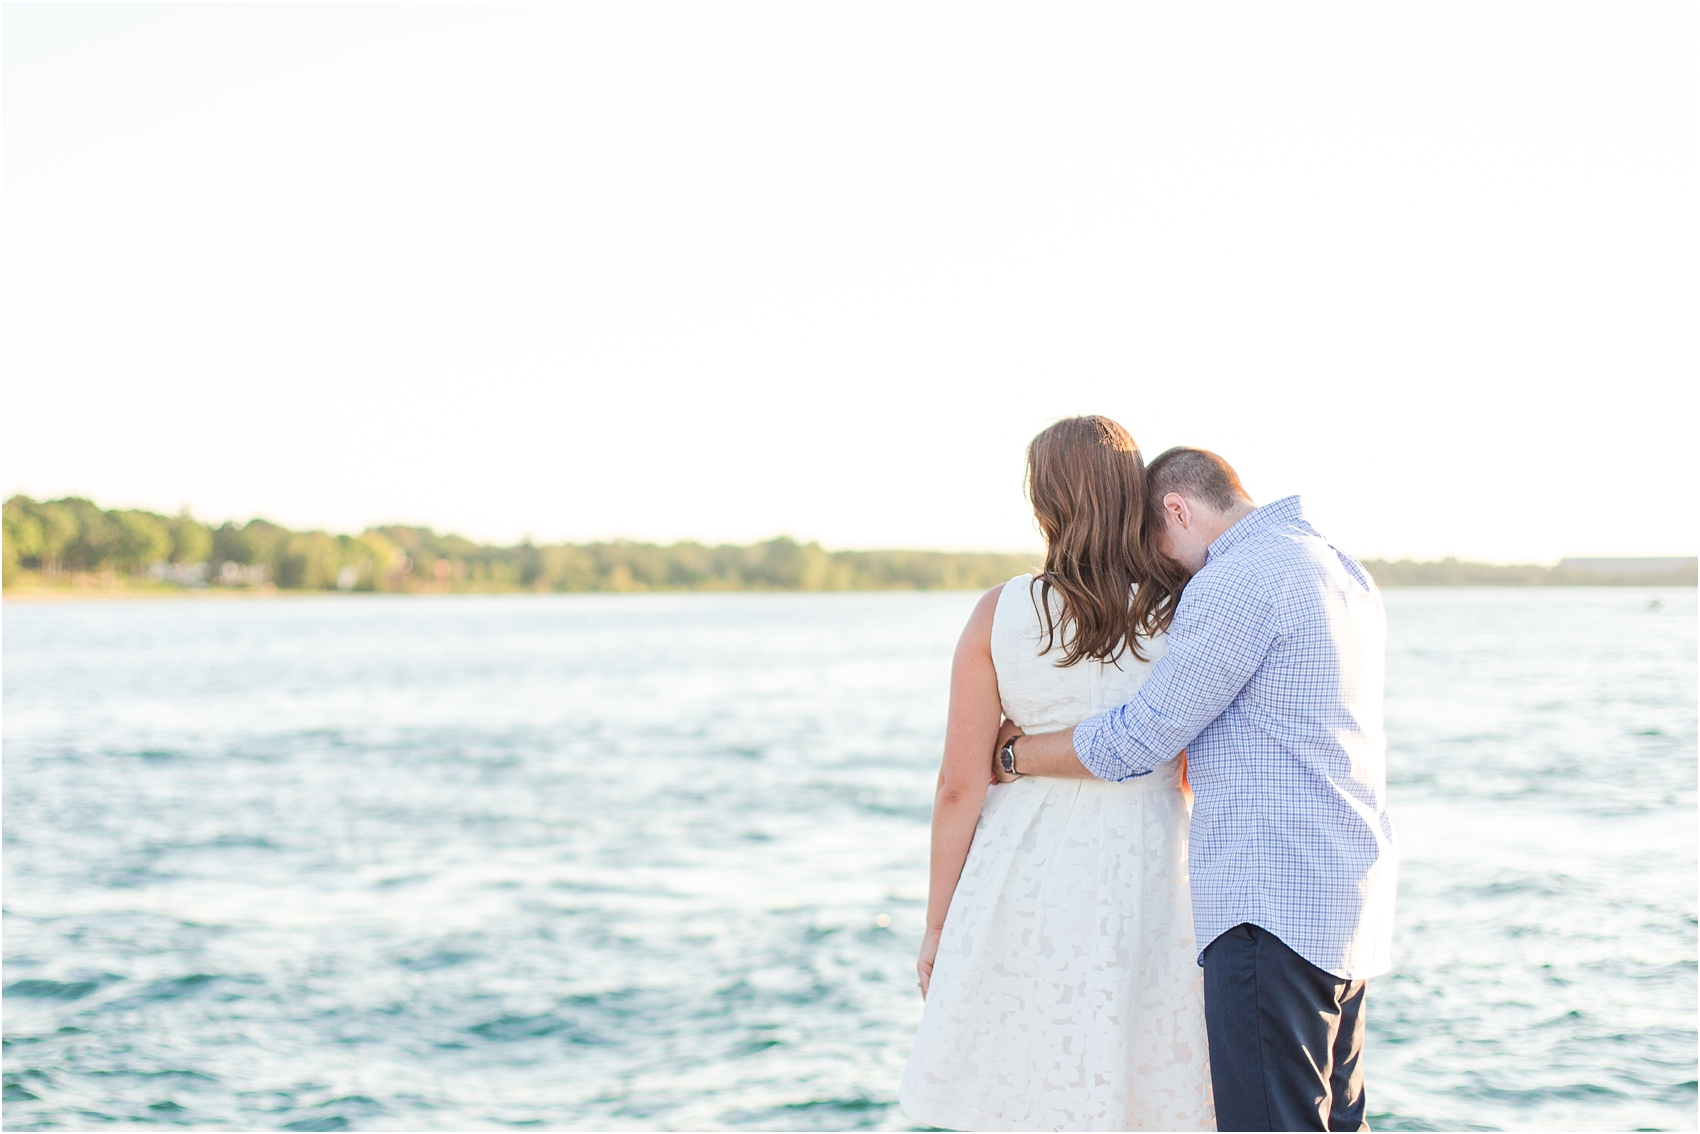 romantic-sunset-engagement-photos-at-the-lighthouse-in-charlevoix-mi-by-courtney-carolyn-photography_0015.jpg